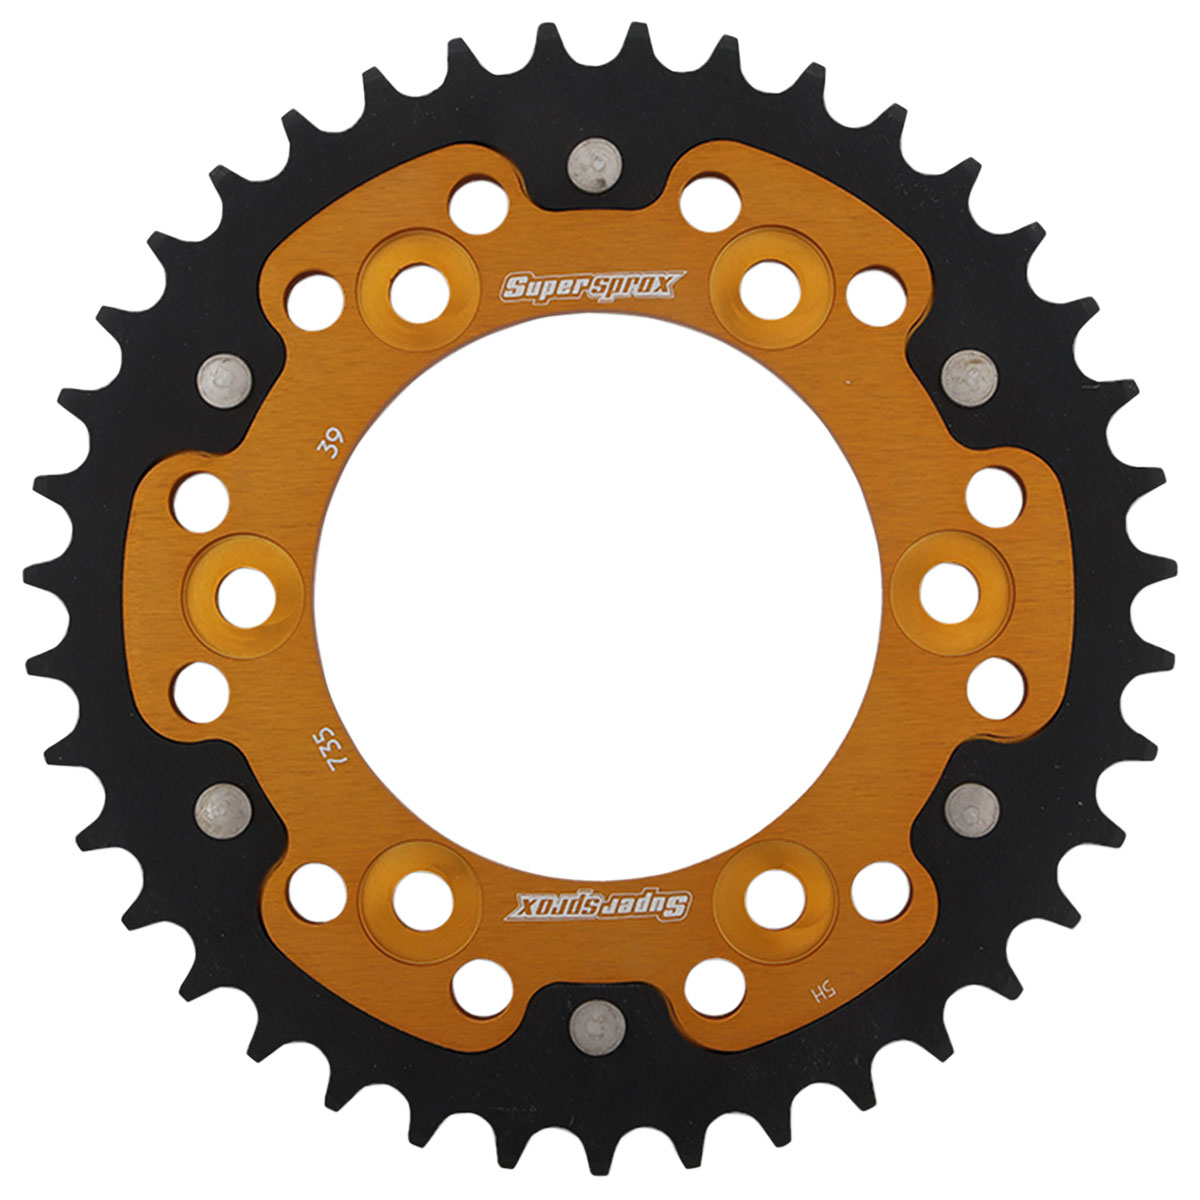 Supersprox Rear Stealth Sprocket 520 39T Gold